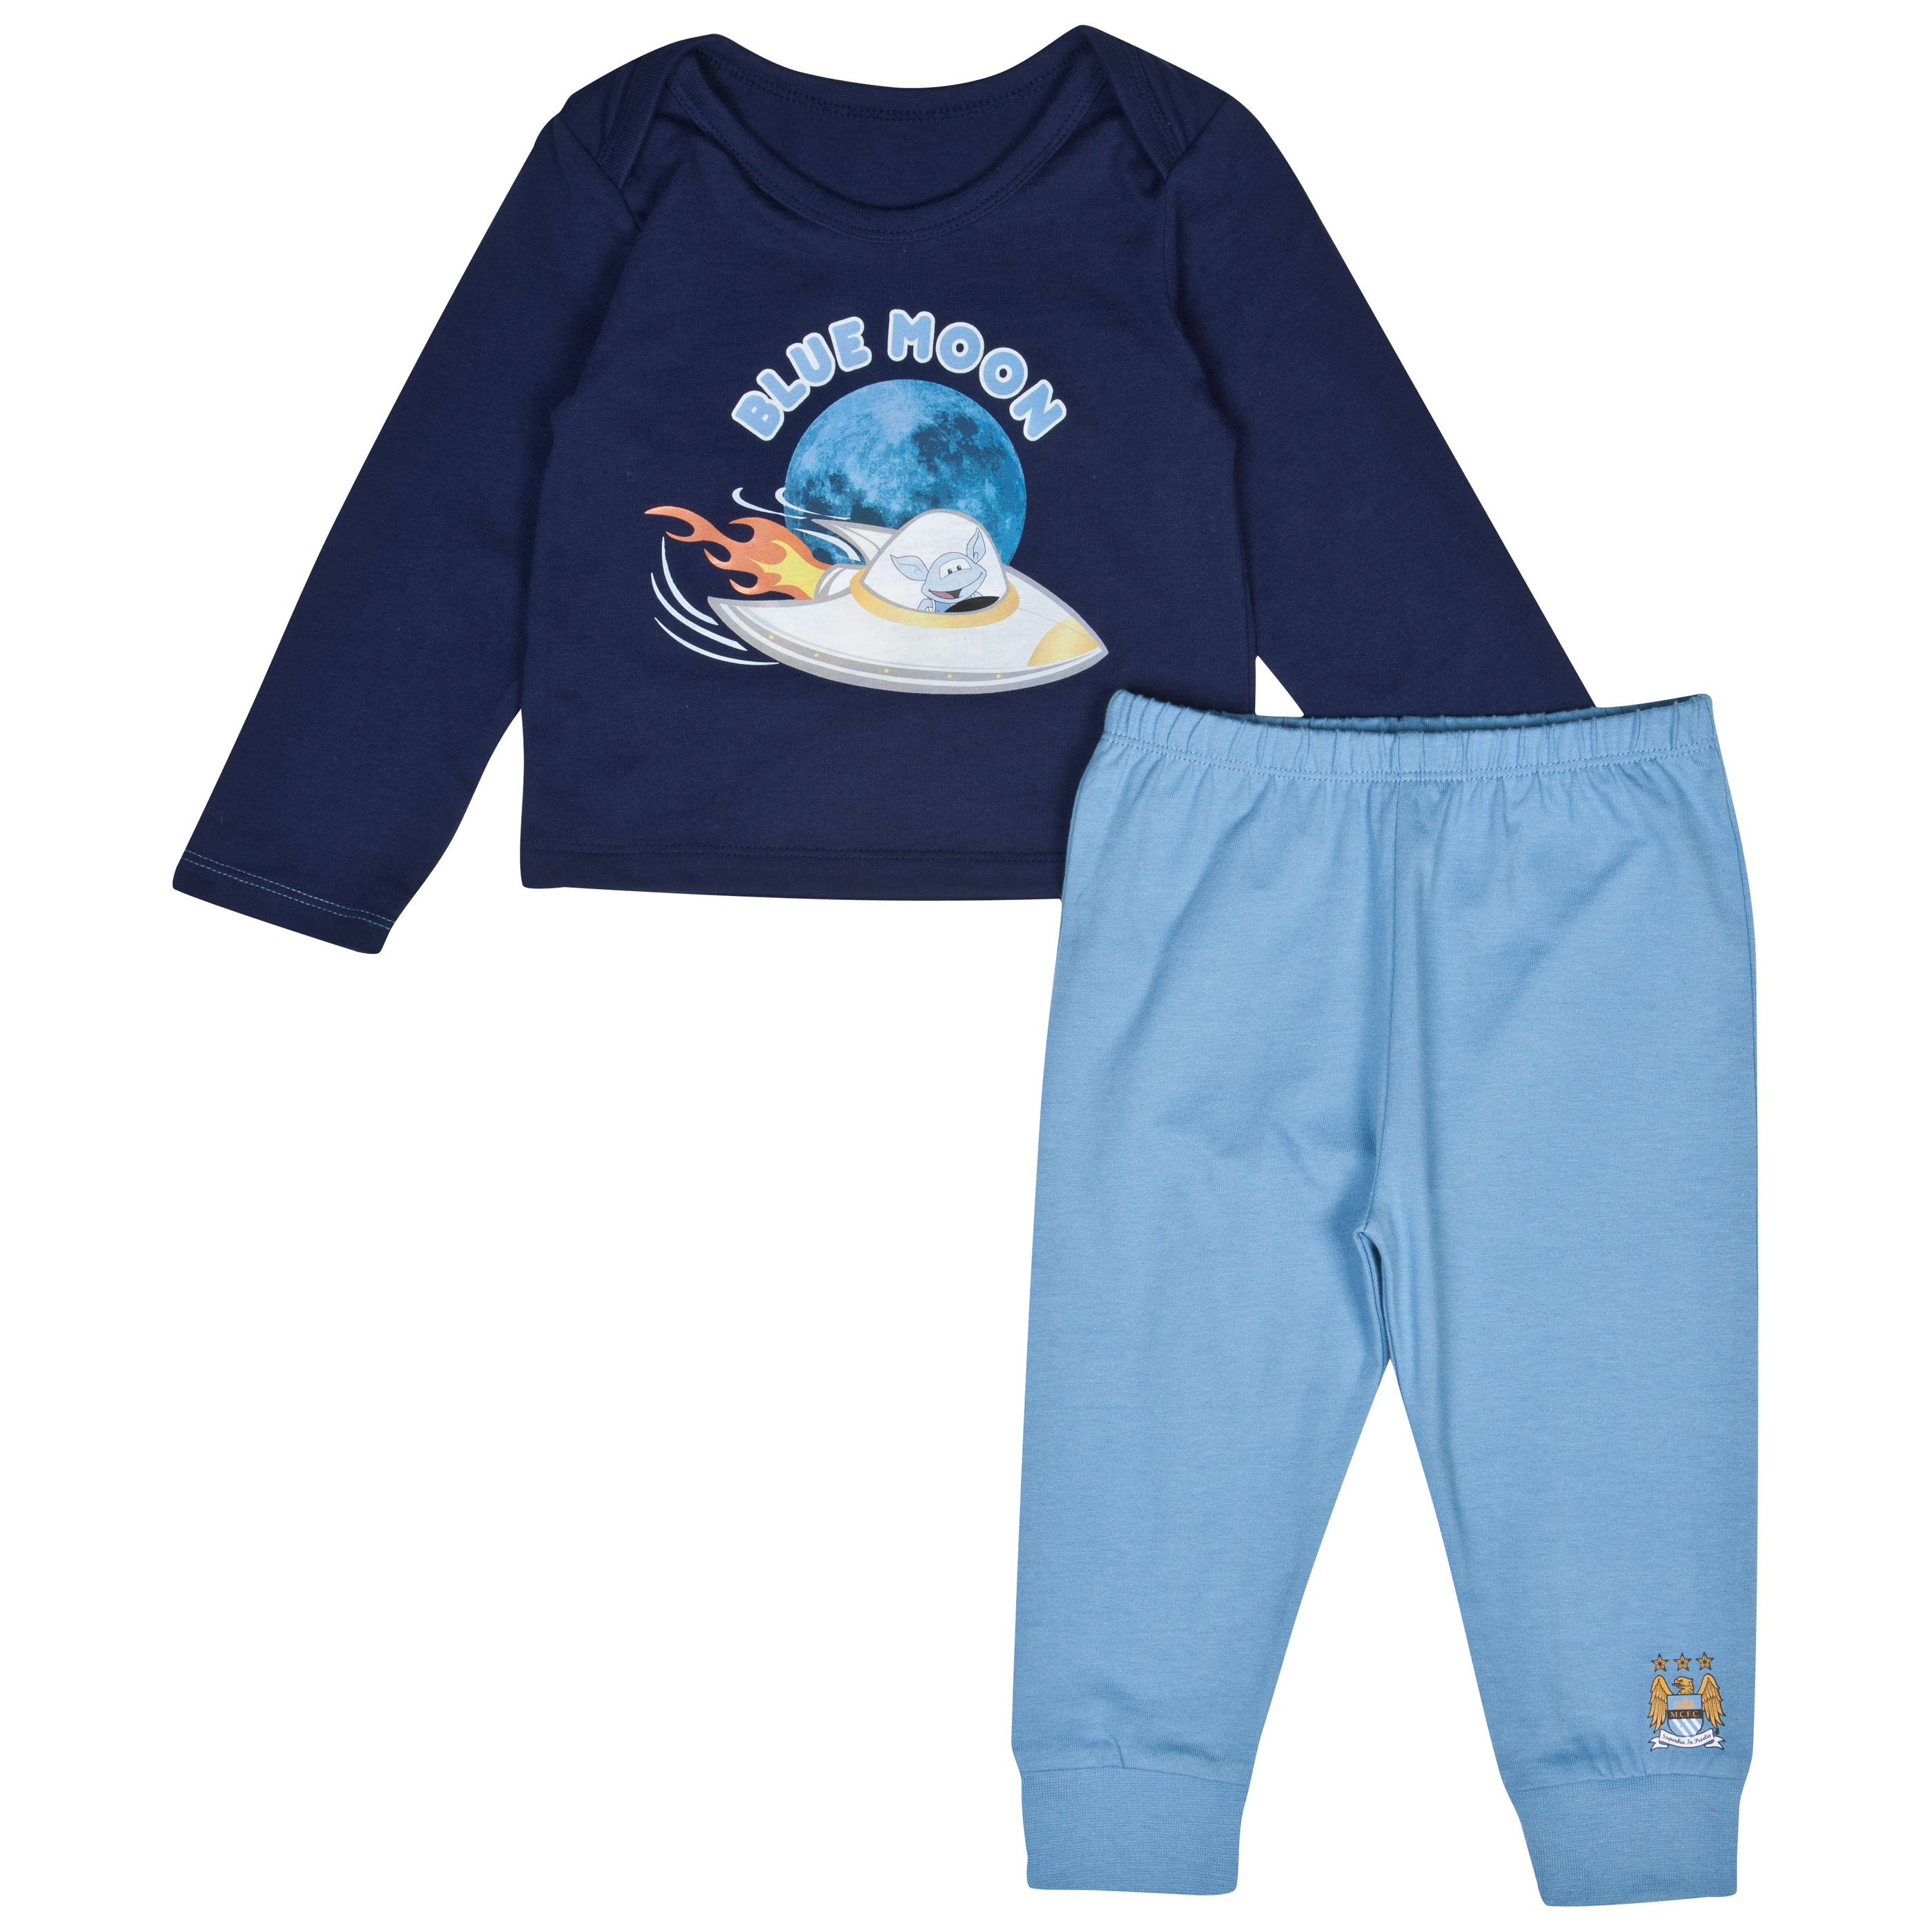 Manchester City Blue Moon 2 Piece Set - Navy/Sky - Baby